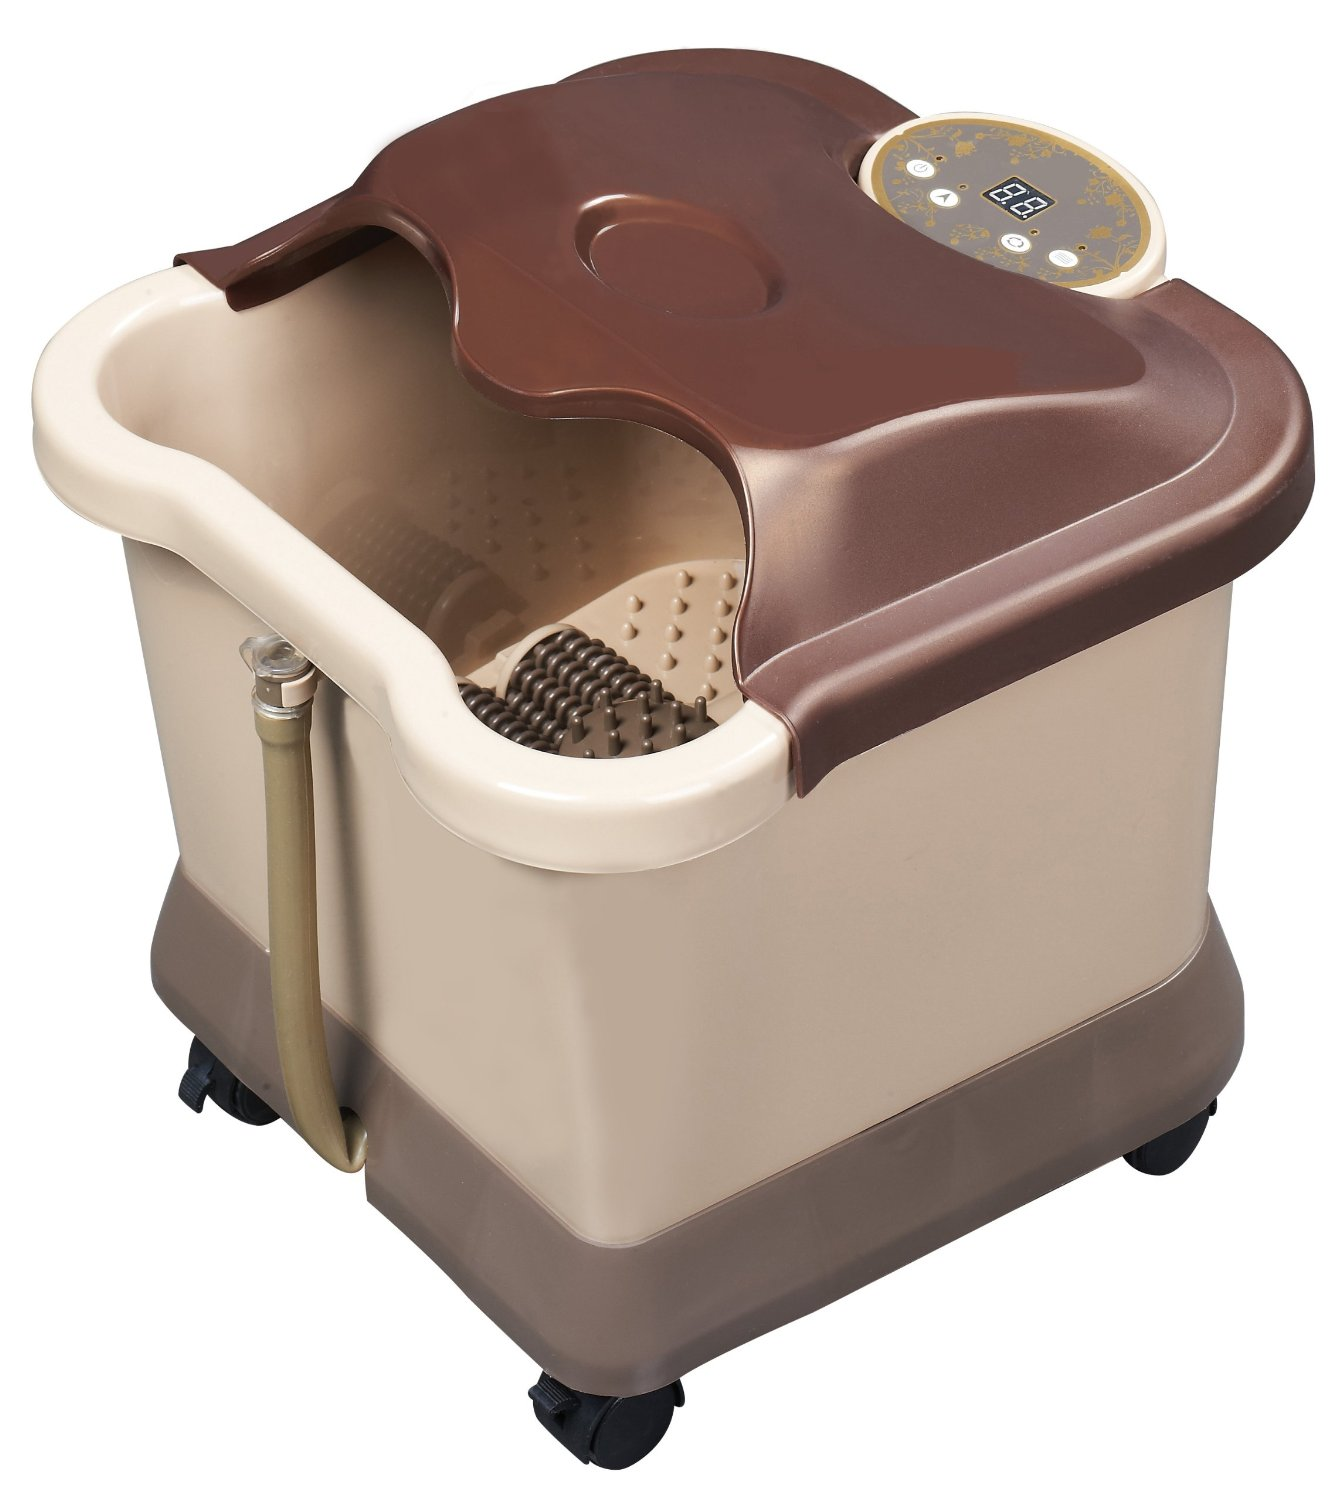 Carepeutic Foot and Leg Best Foot Spa Bath Massager